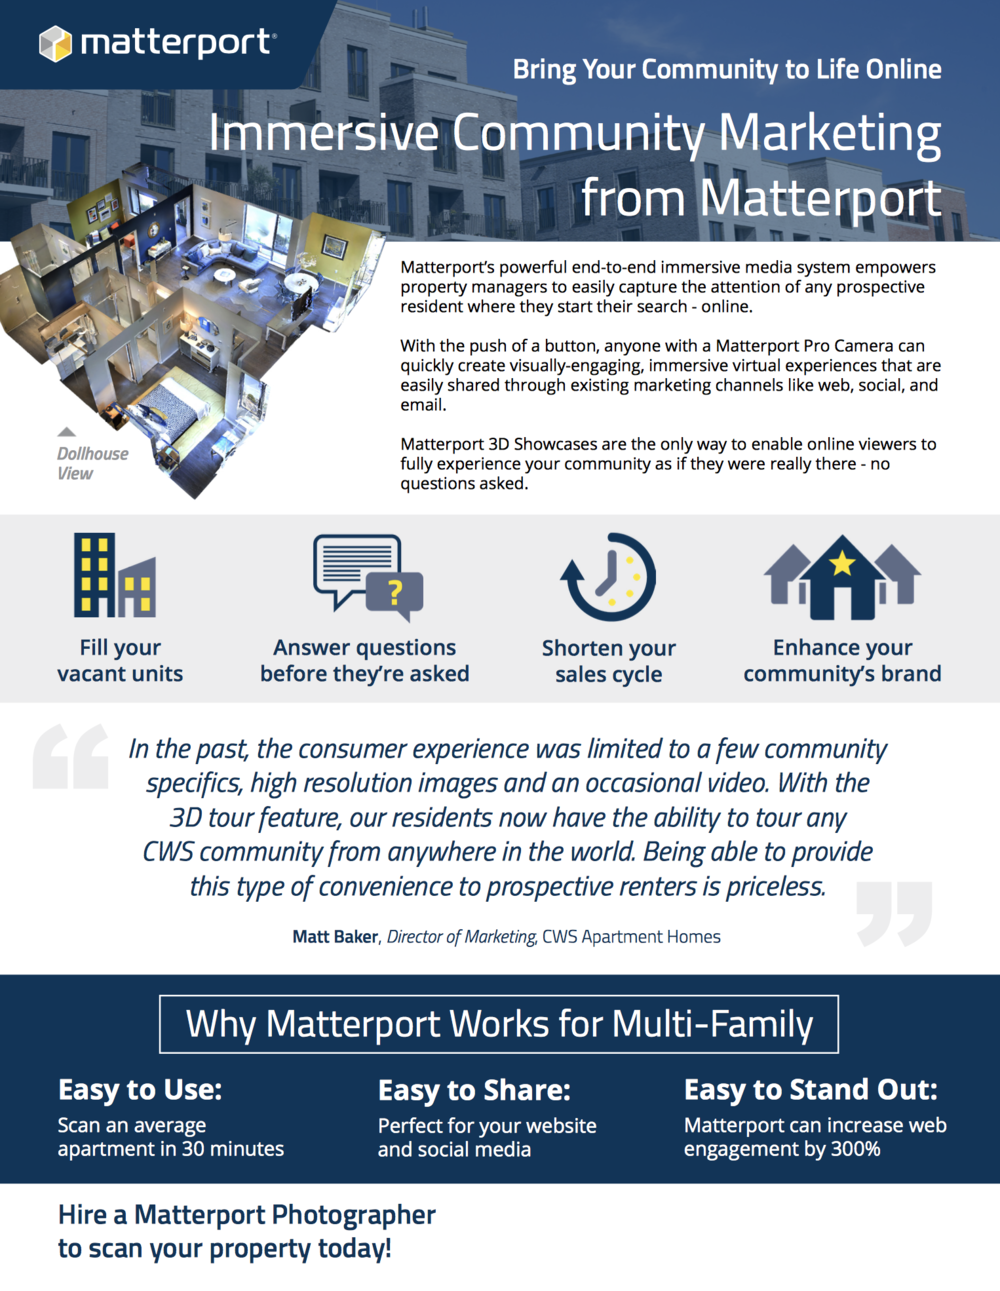 Engage Communities - 91% of prospective renters begin their search online and Matterport customers report up to 300% more website engagement. Will your community be able to compete?